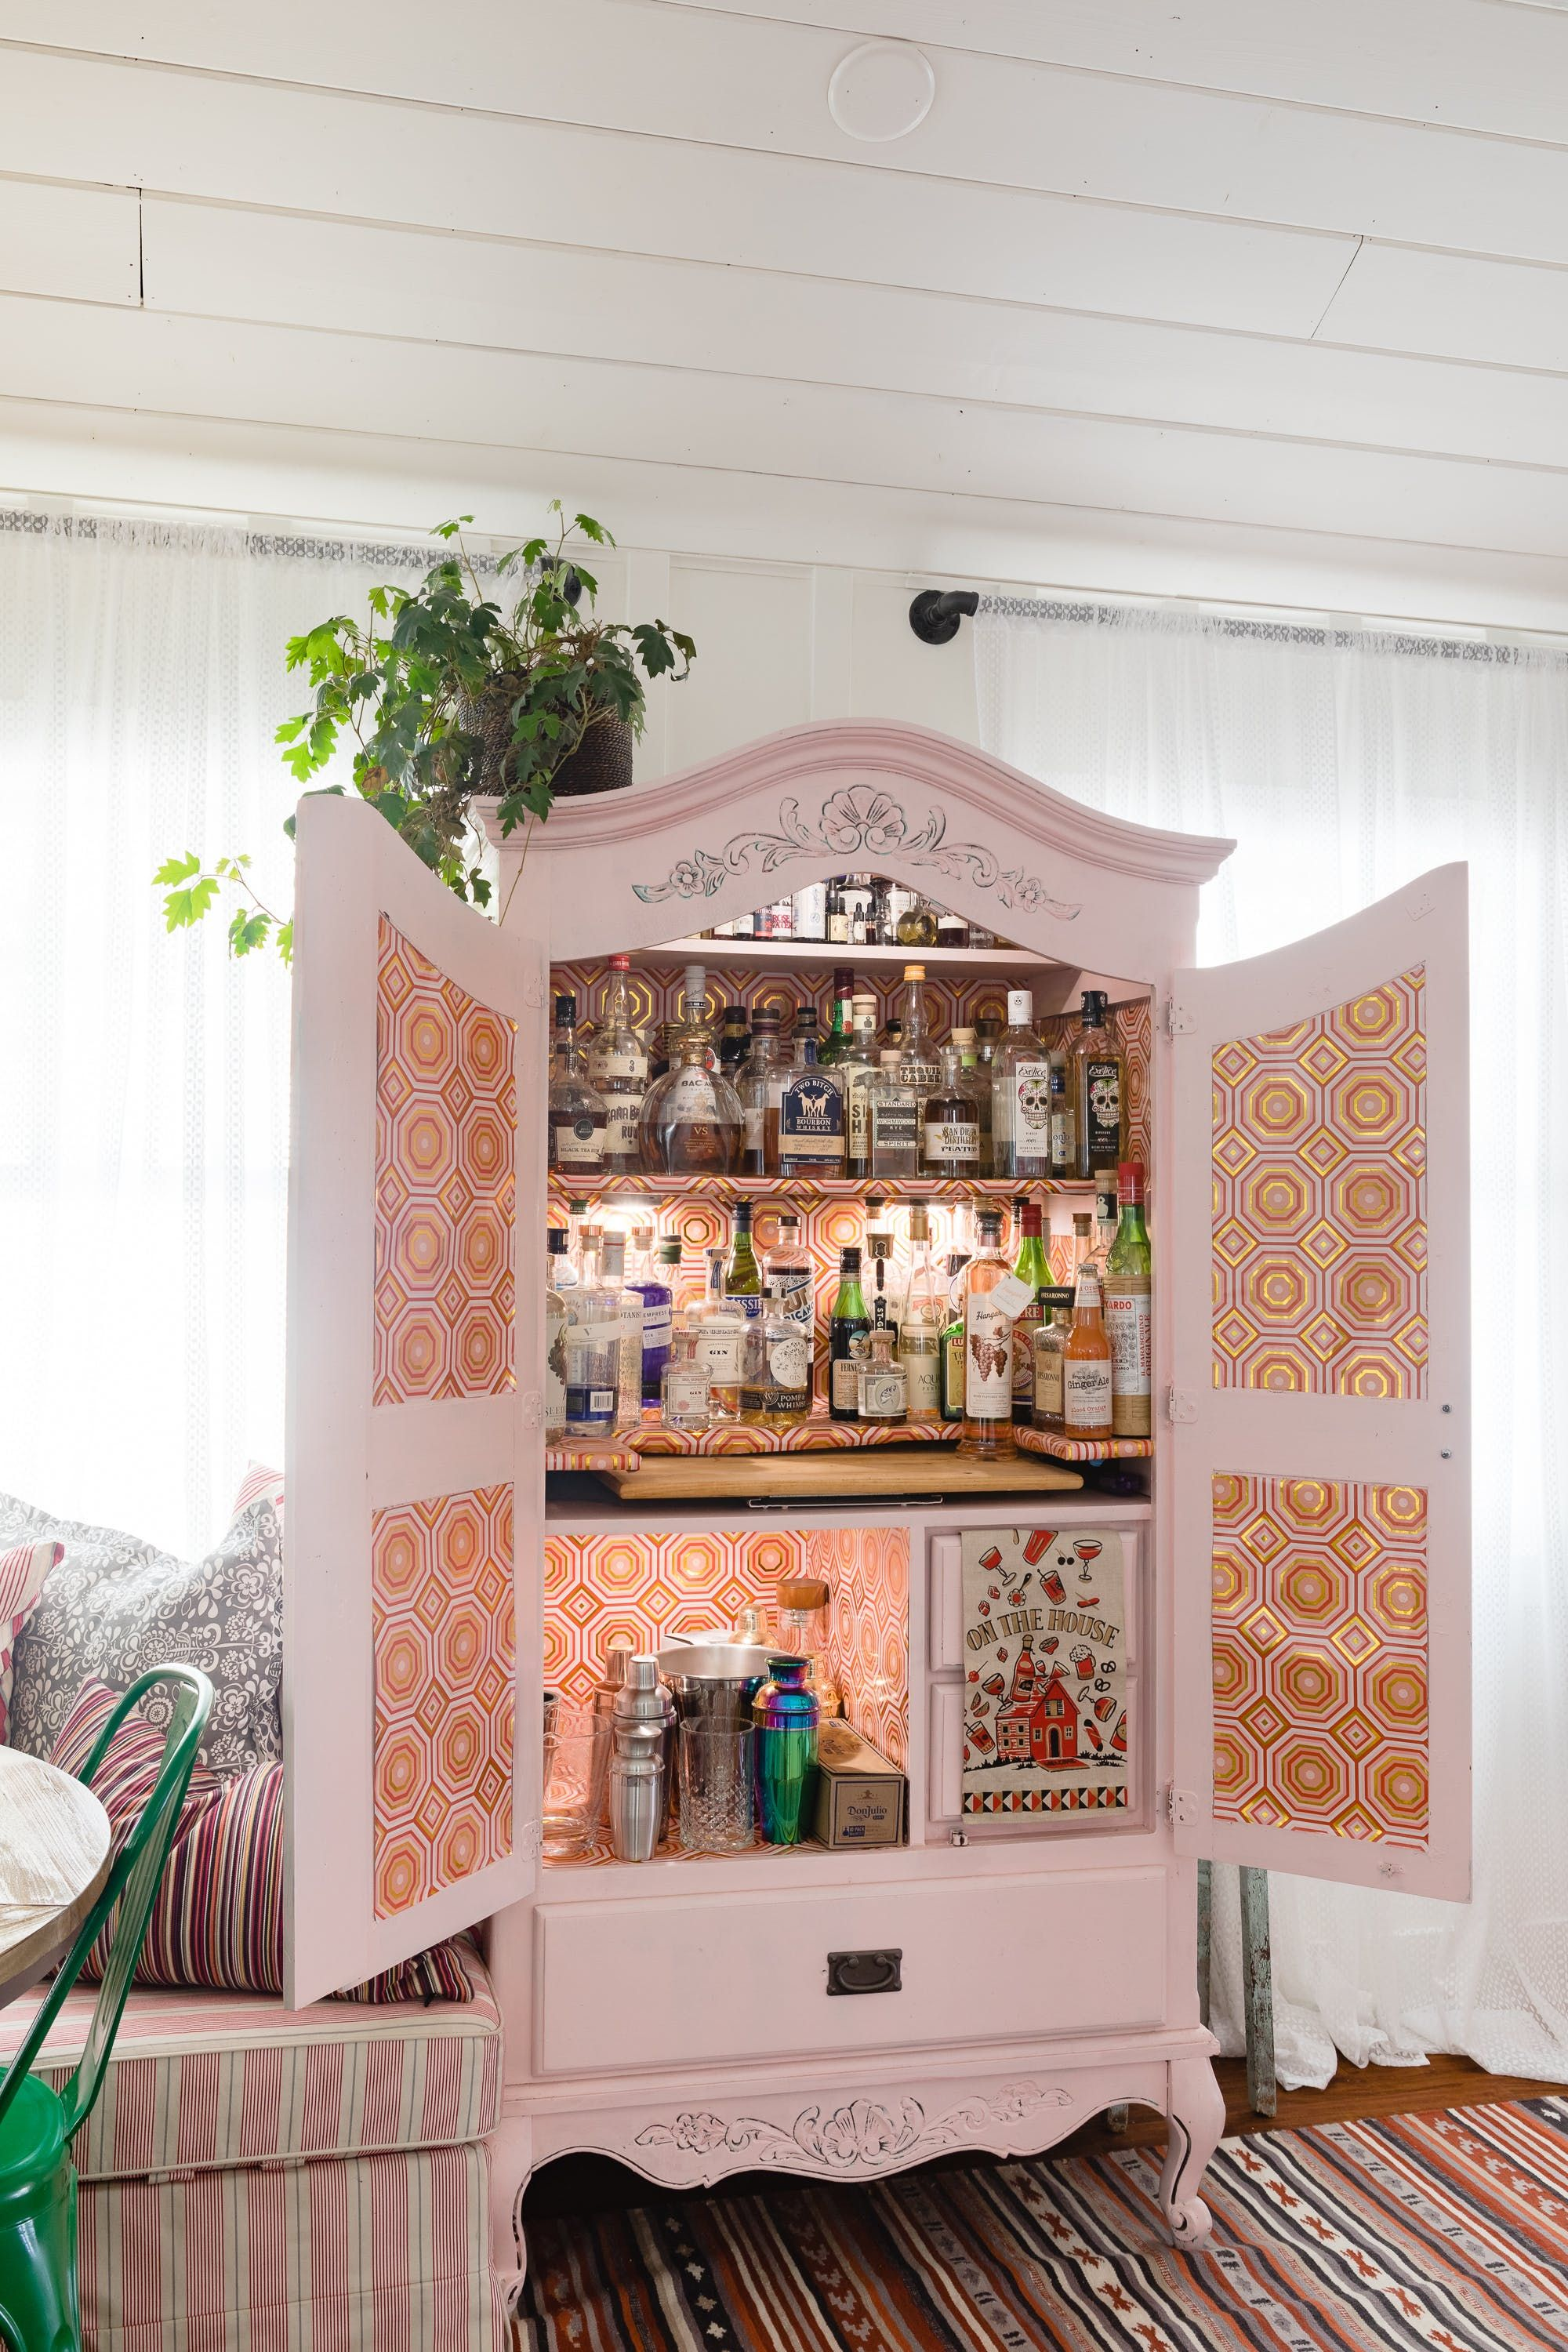 Drinking And Decorating With Chickens In A Quirky La Farmhouse Quirky Home Decor Home Furniture